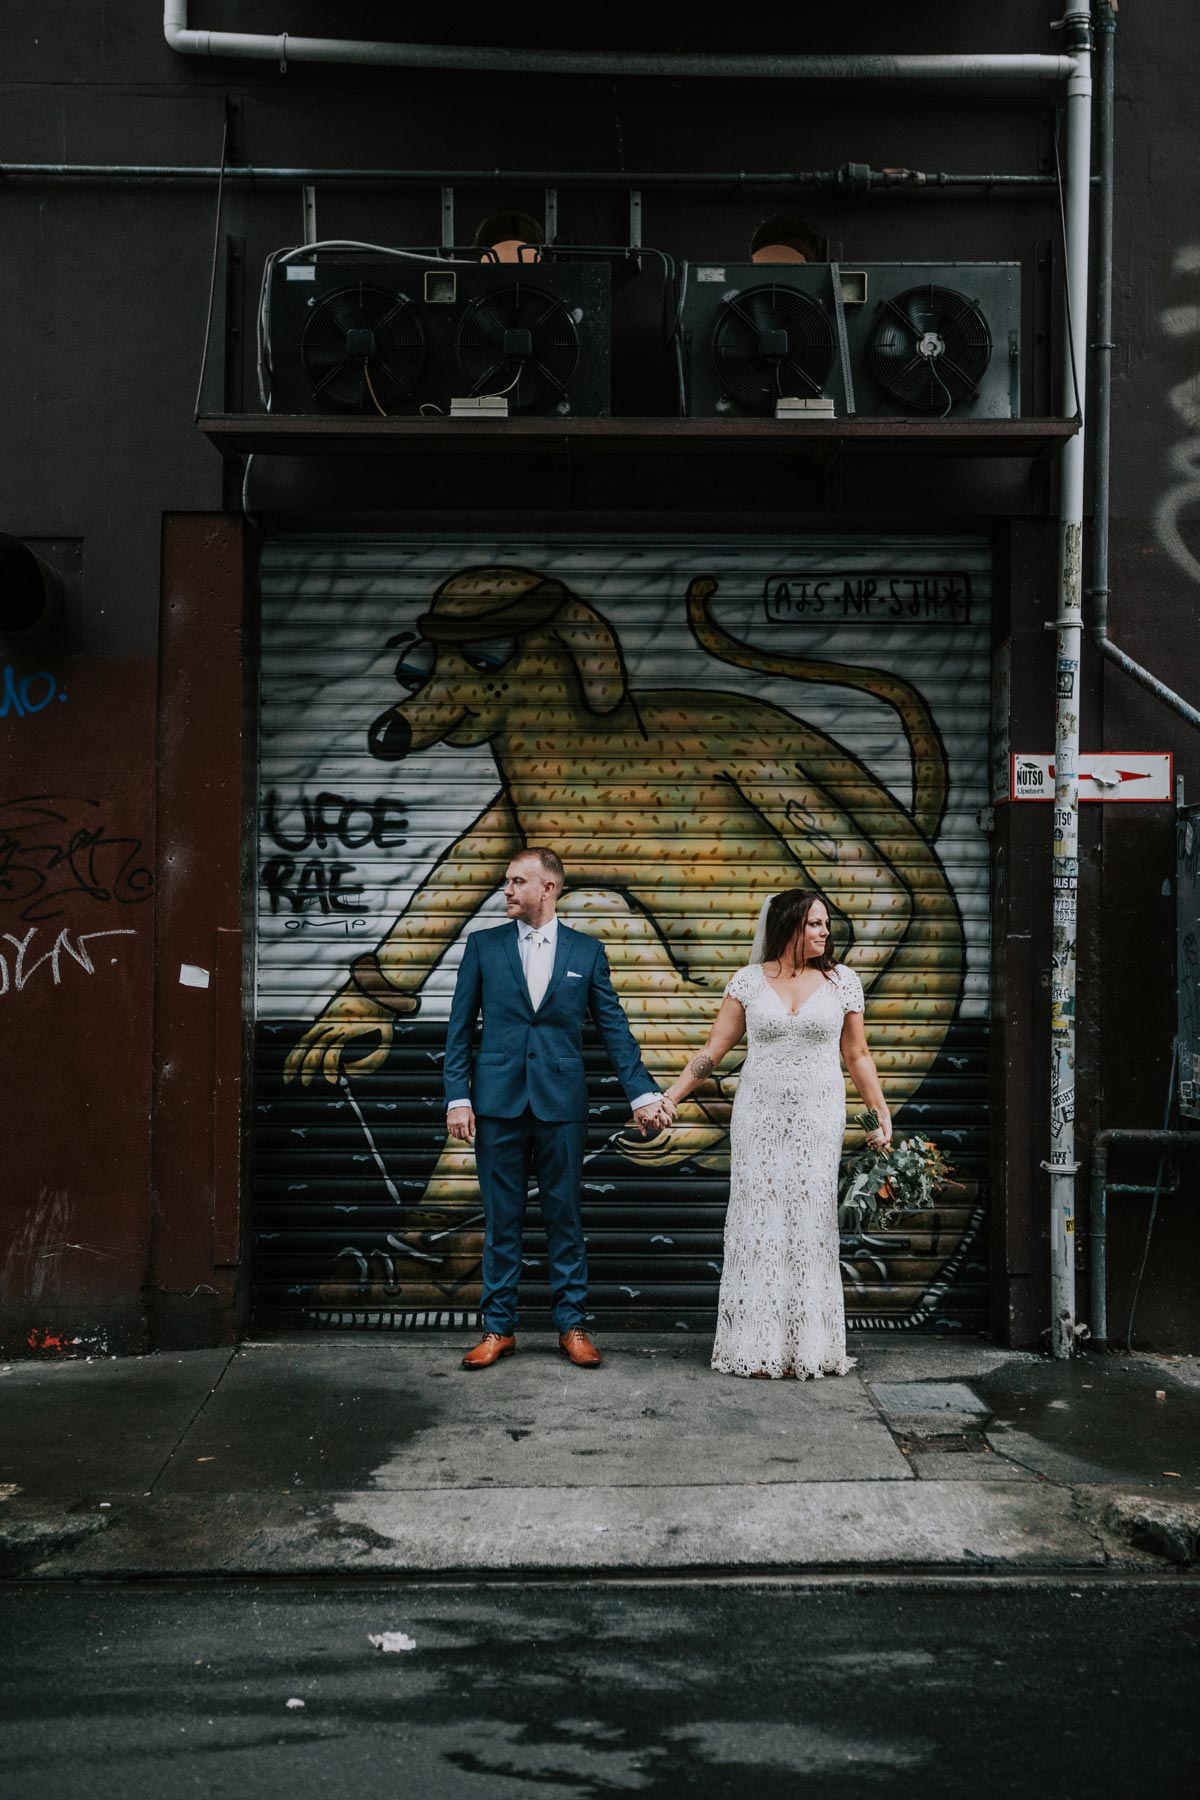 Chancery Chambers Wedding Auckland Cross Street urban graffiti wedding photo ideas Sarah Weber Photography